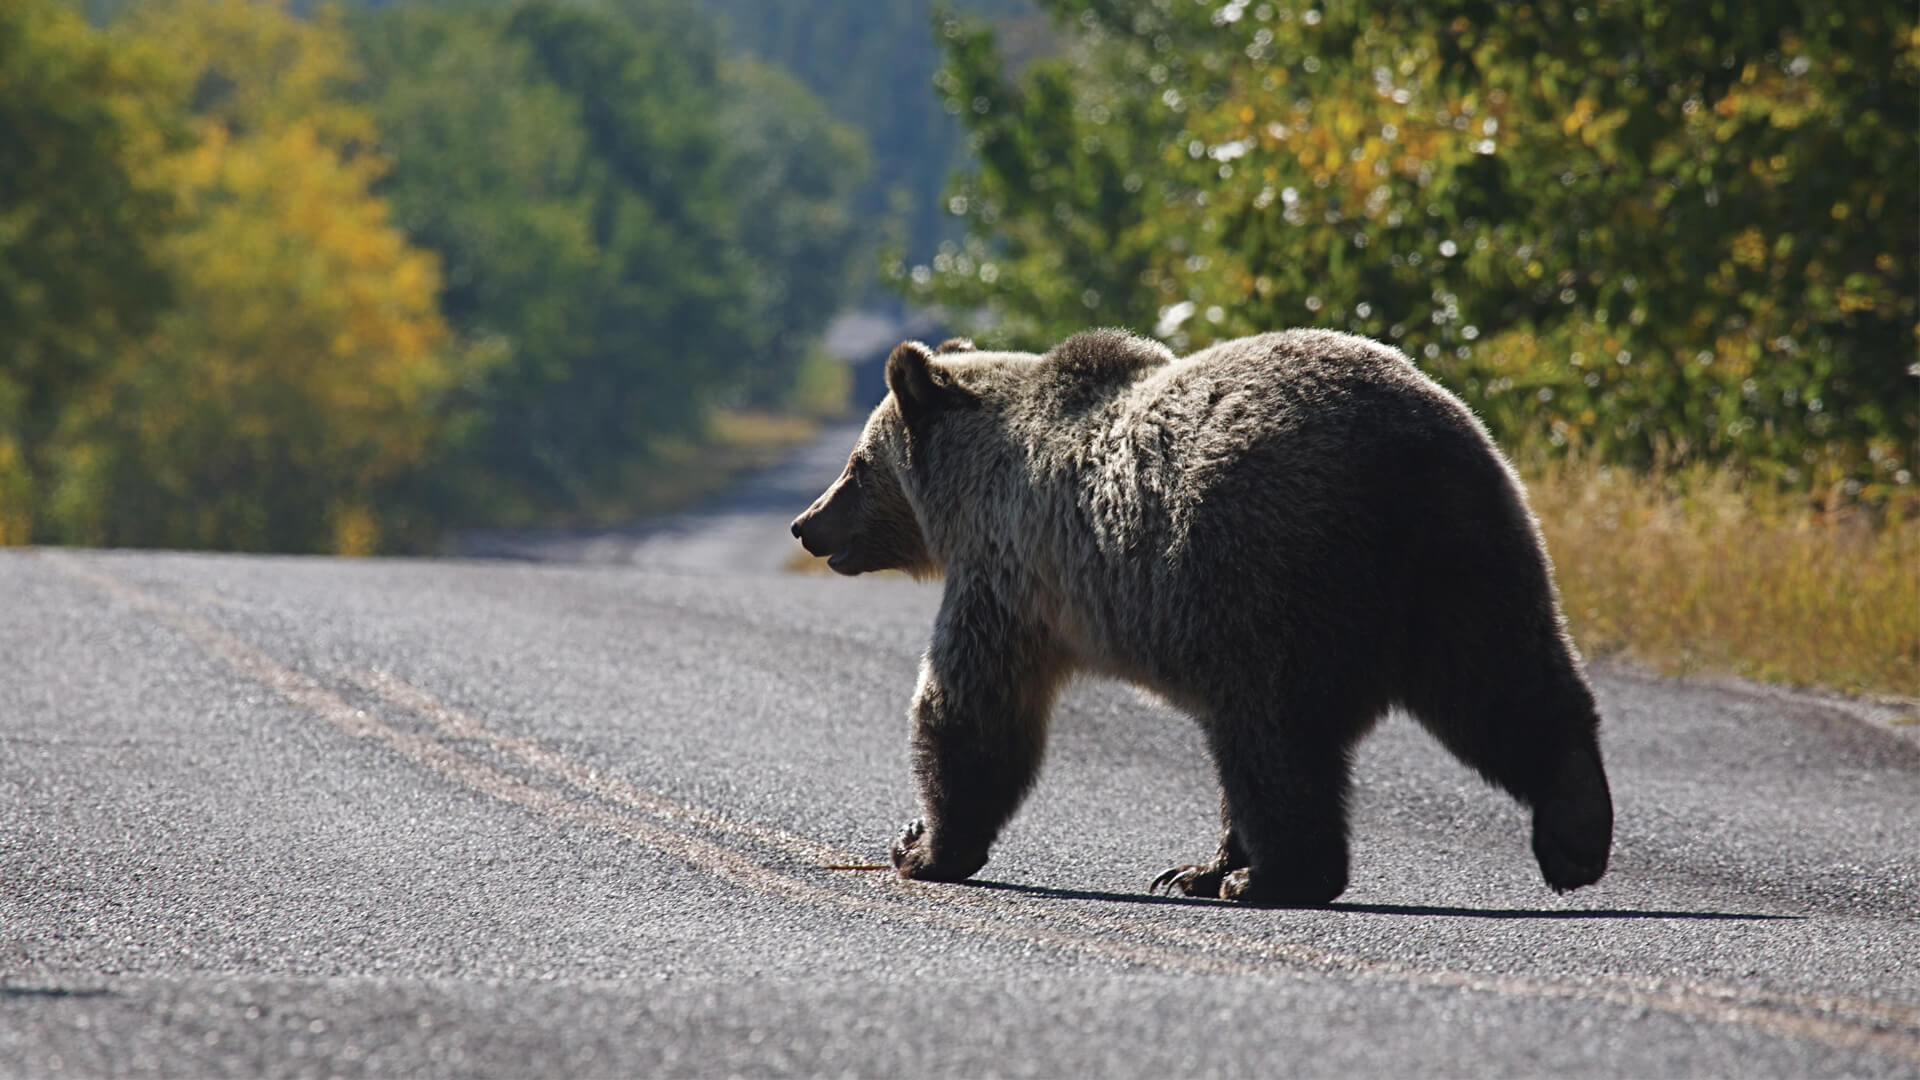 How Does Road Visibility Influence Grizzly Bear Movement?